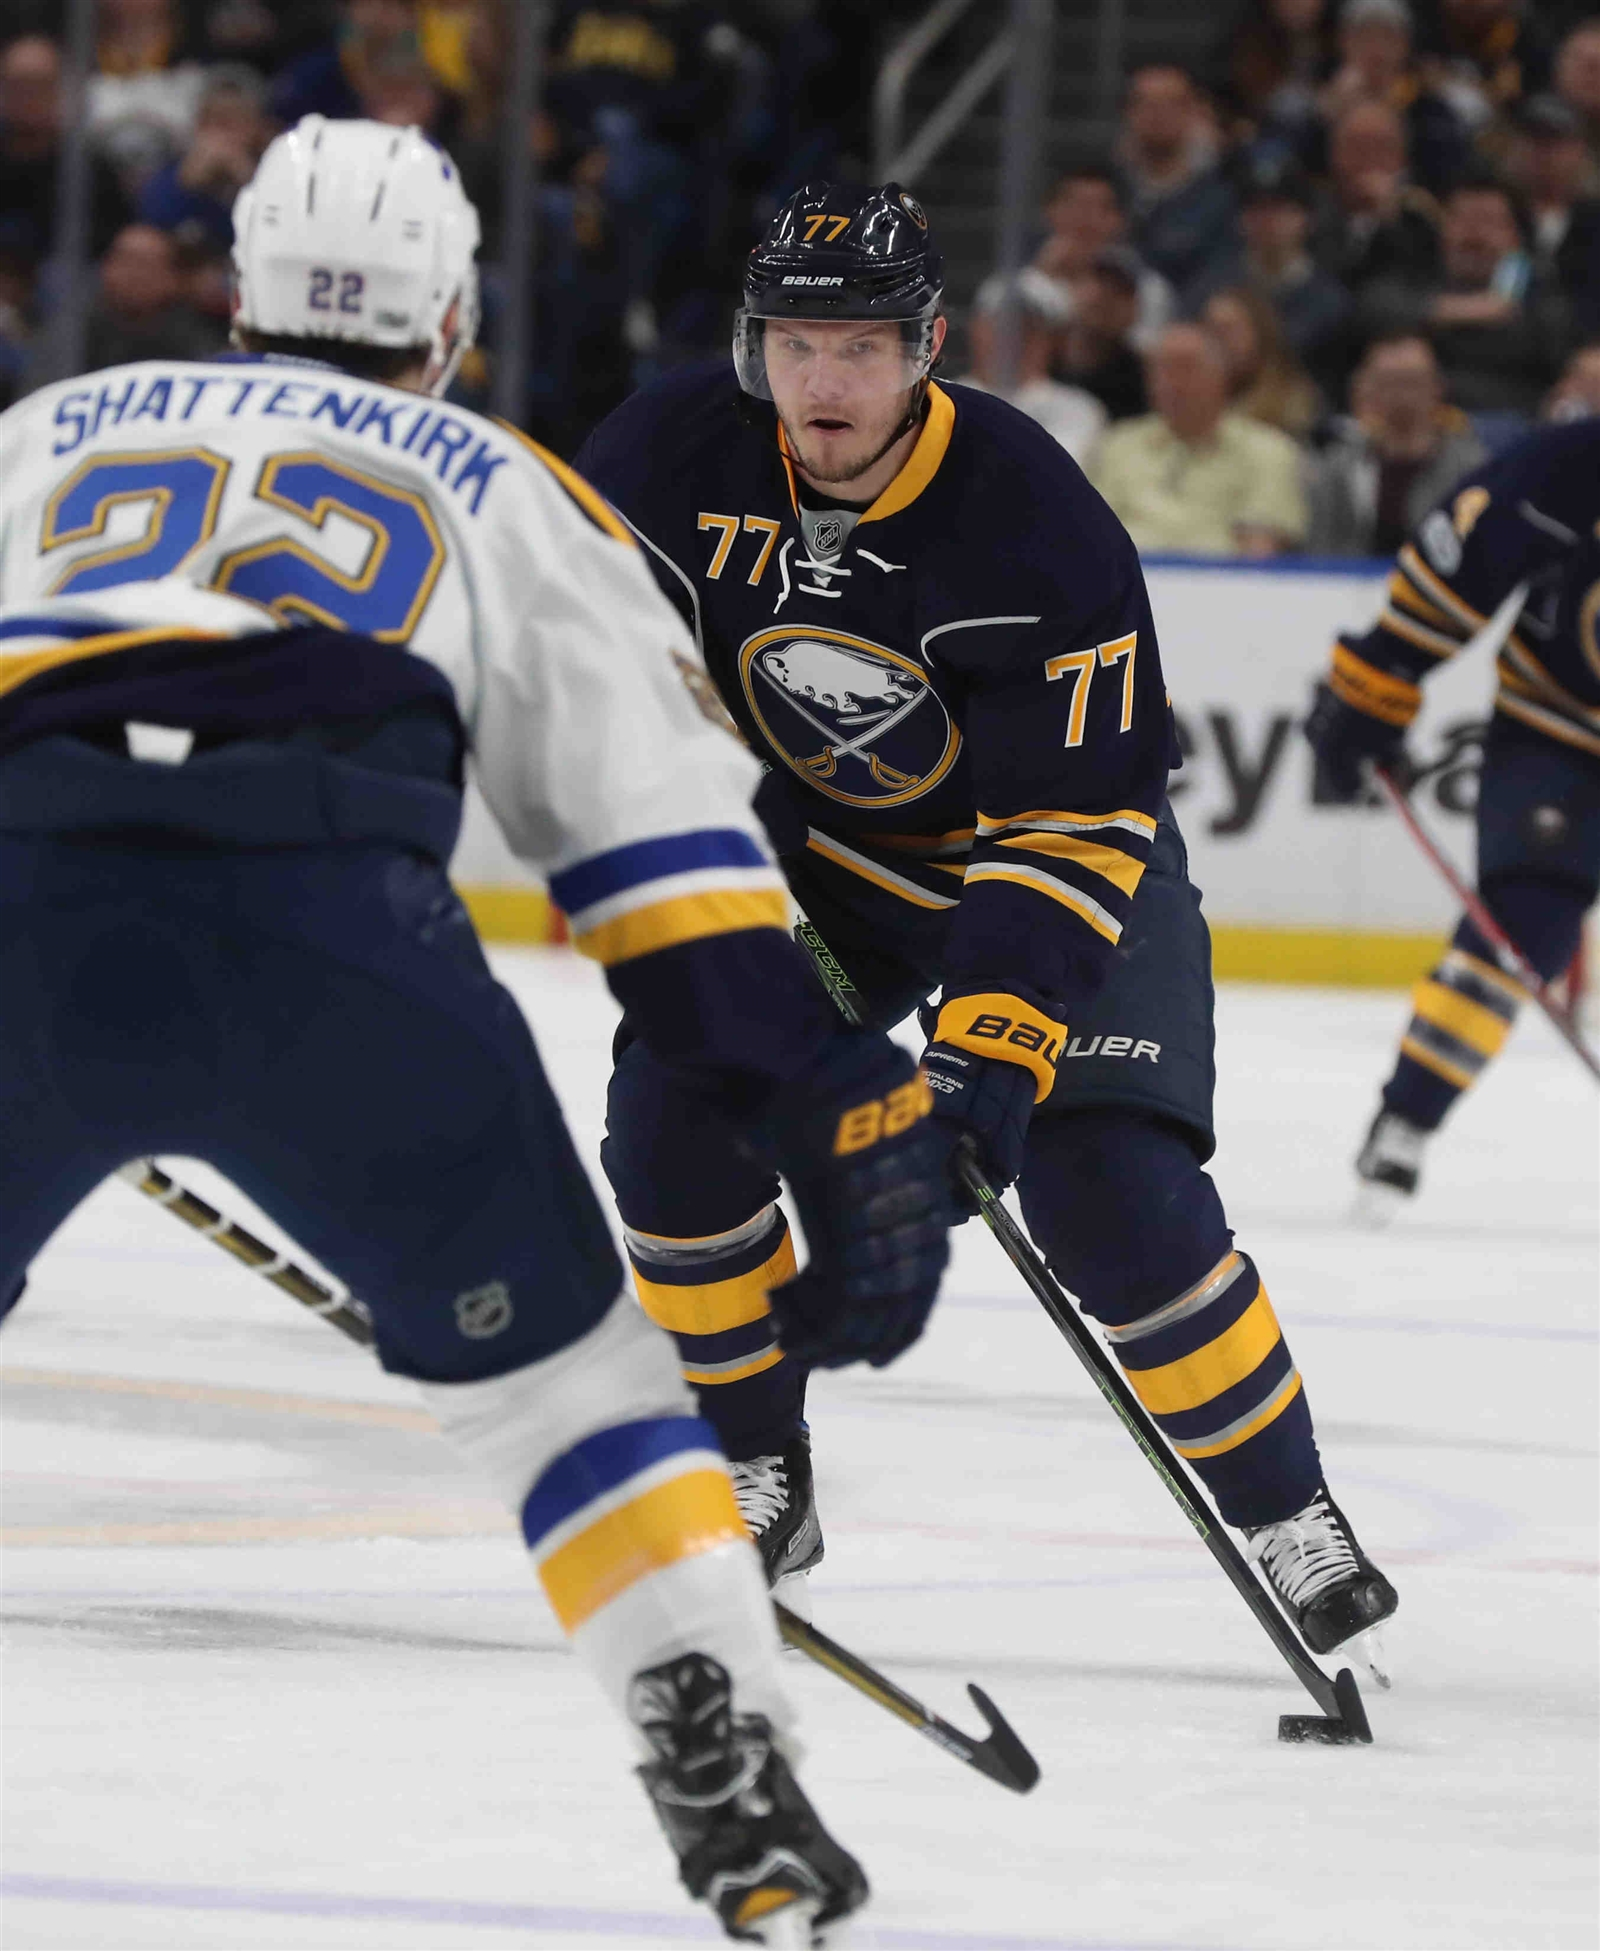 Dmitry Kulikov could fetch the Sabres a second-round pick in a trade. (James P. McCoy/Buffalo News)